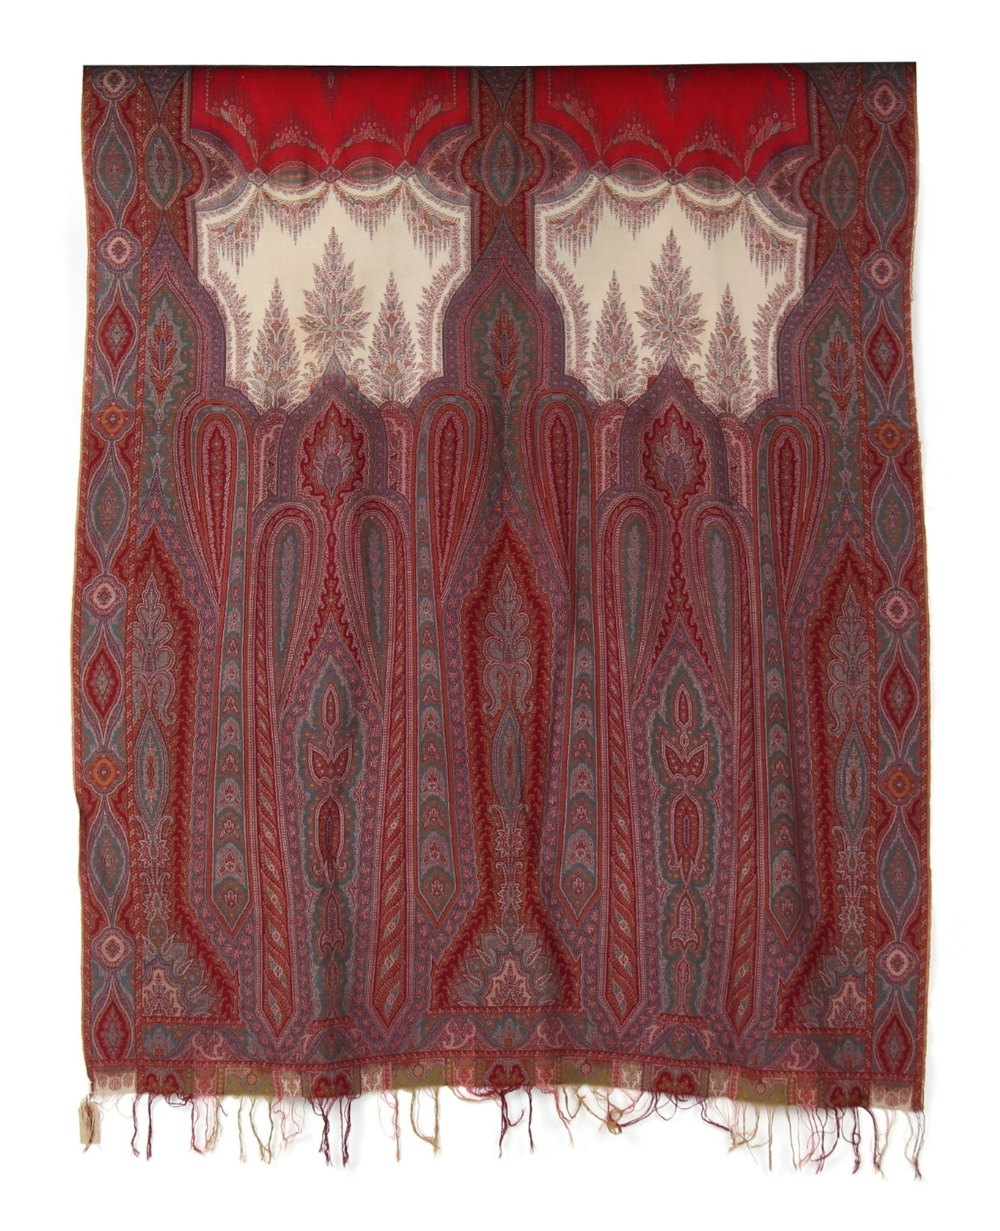 Property of a gentleman - a Paisley shawl, probably late 19th century, 126 by 60ins. (320 by